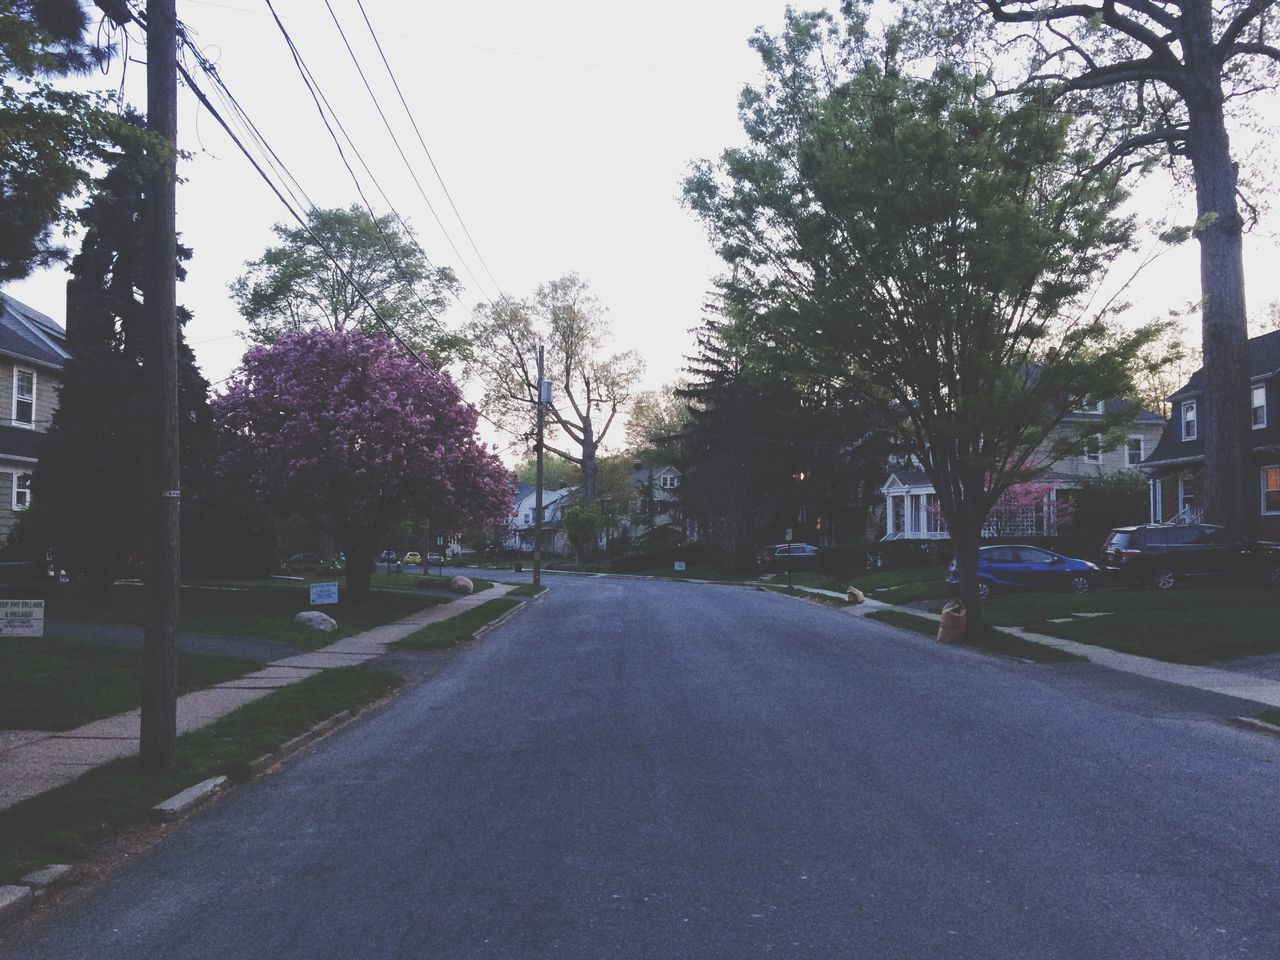 Street Amidst Houses And Trees At Dusk